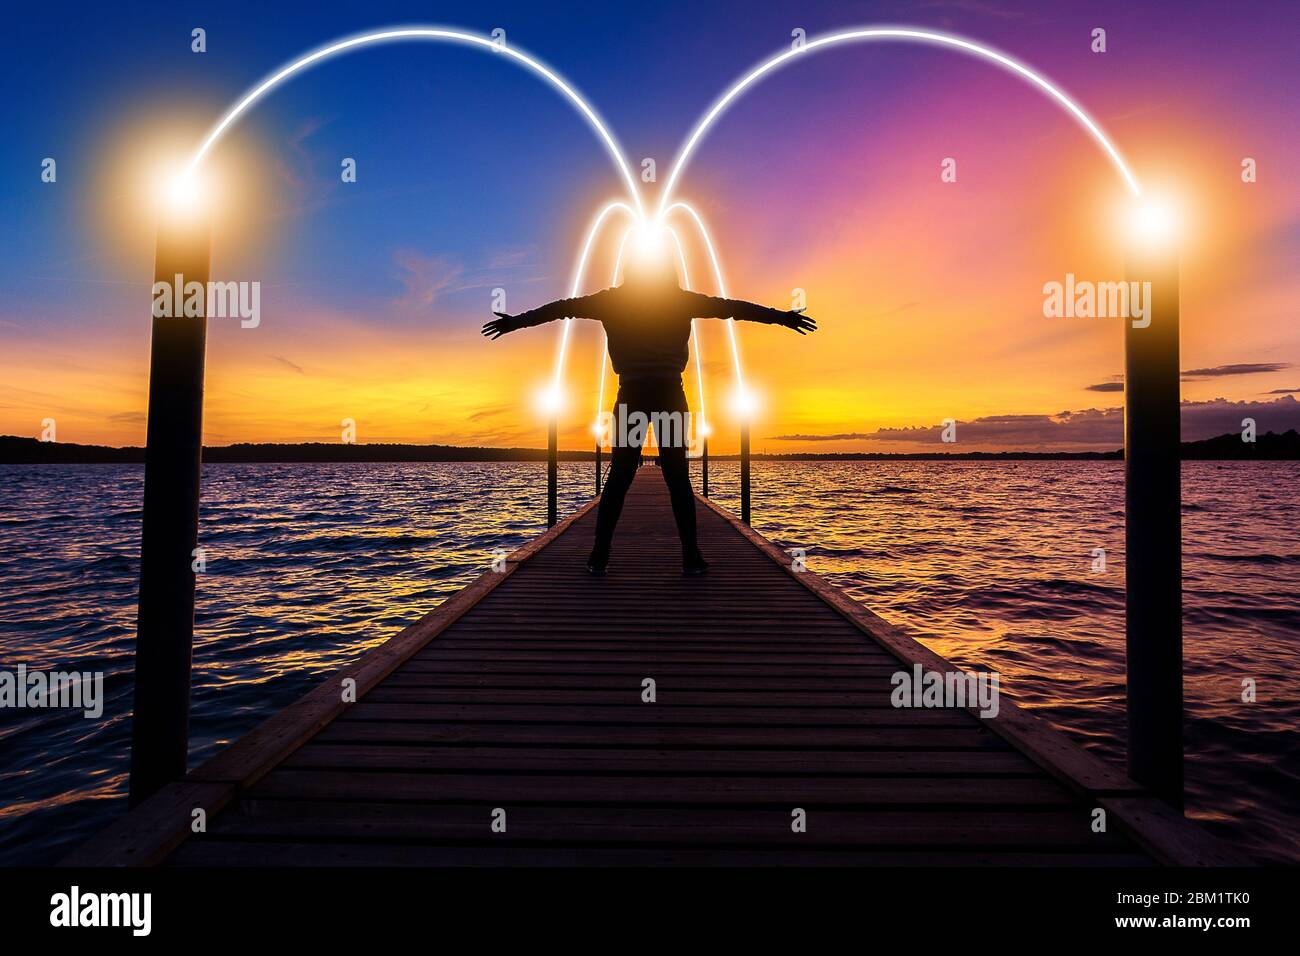 Happy, relax, successful woman thinking on bridge over sea water at sunset time with light of idea connection communication network Stock Photo